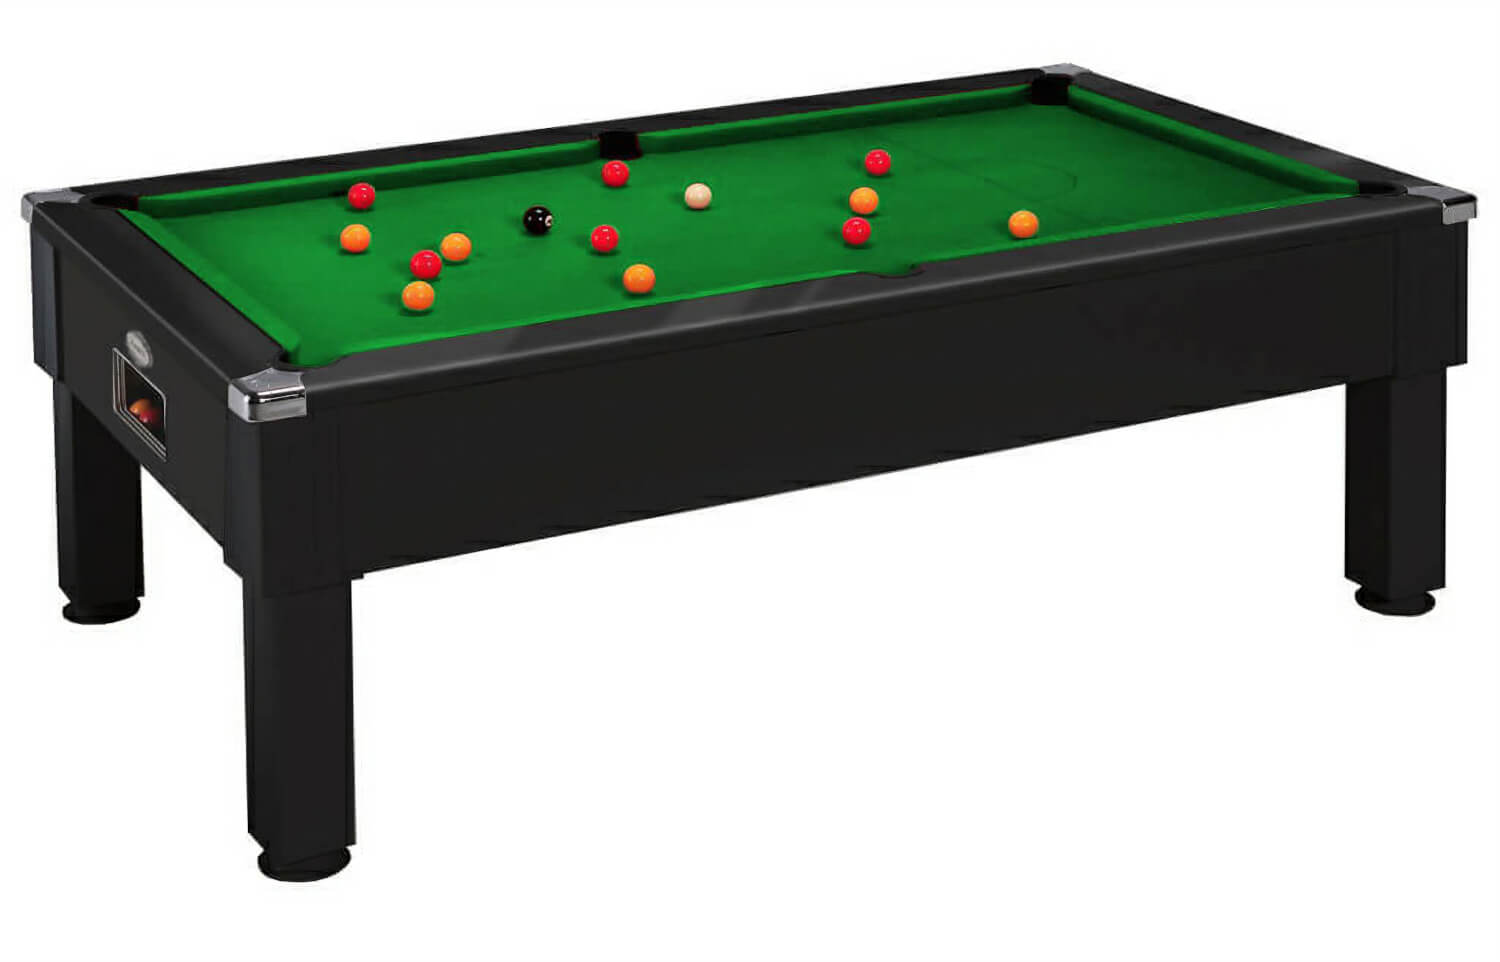 Emirates pool table 6 ft 7 ft 8 ft liberty games for Table table table